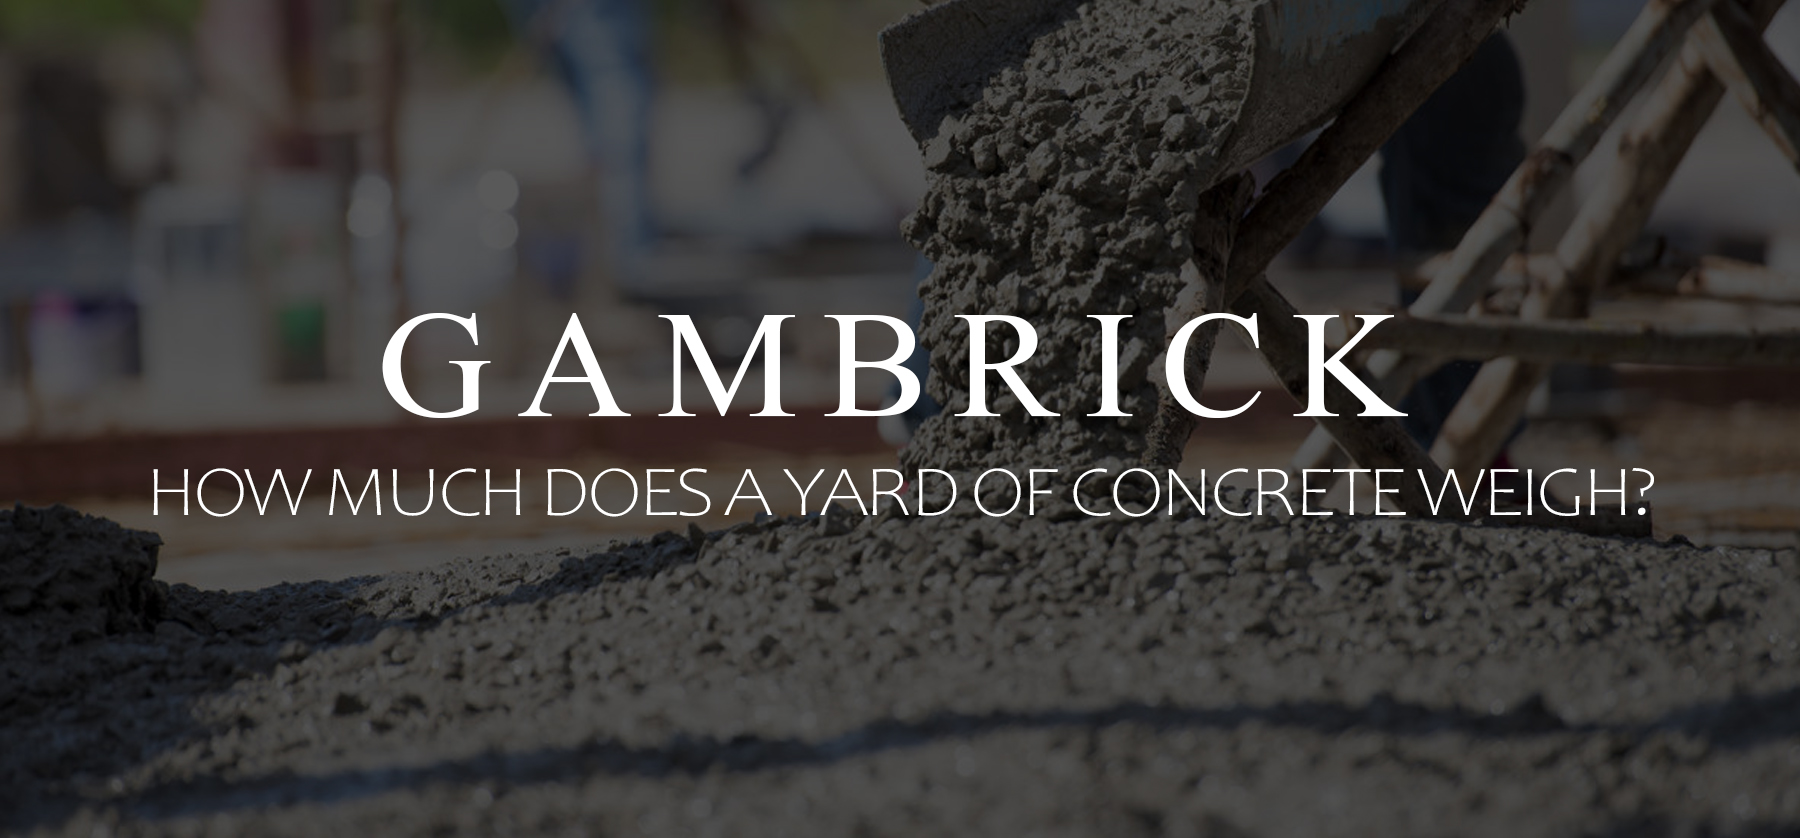 how much does a yard of concrete weigh banner pic